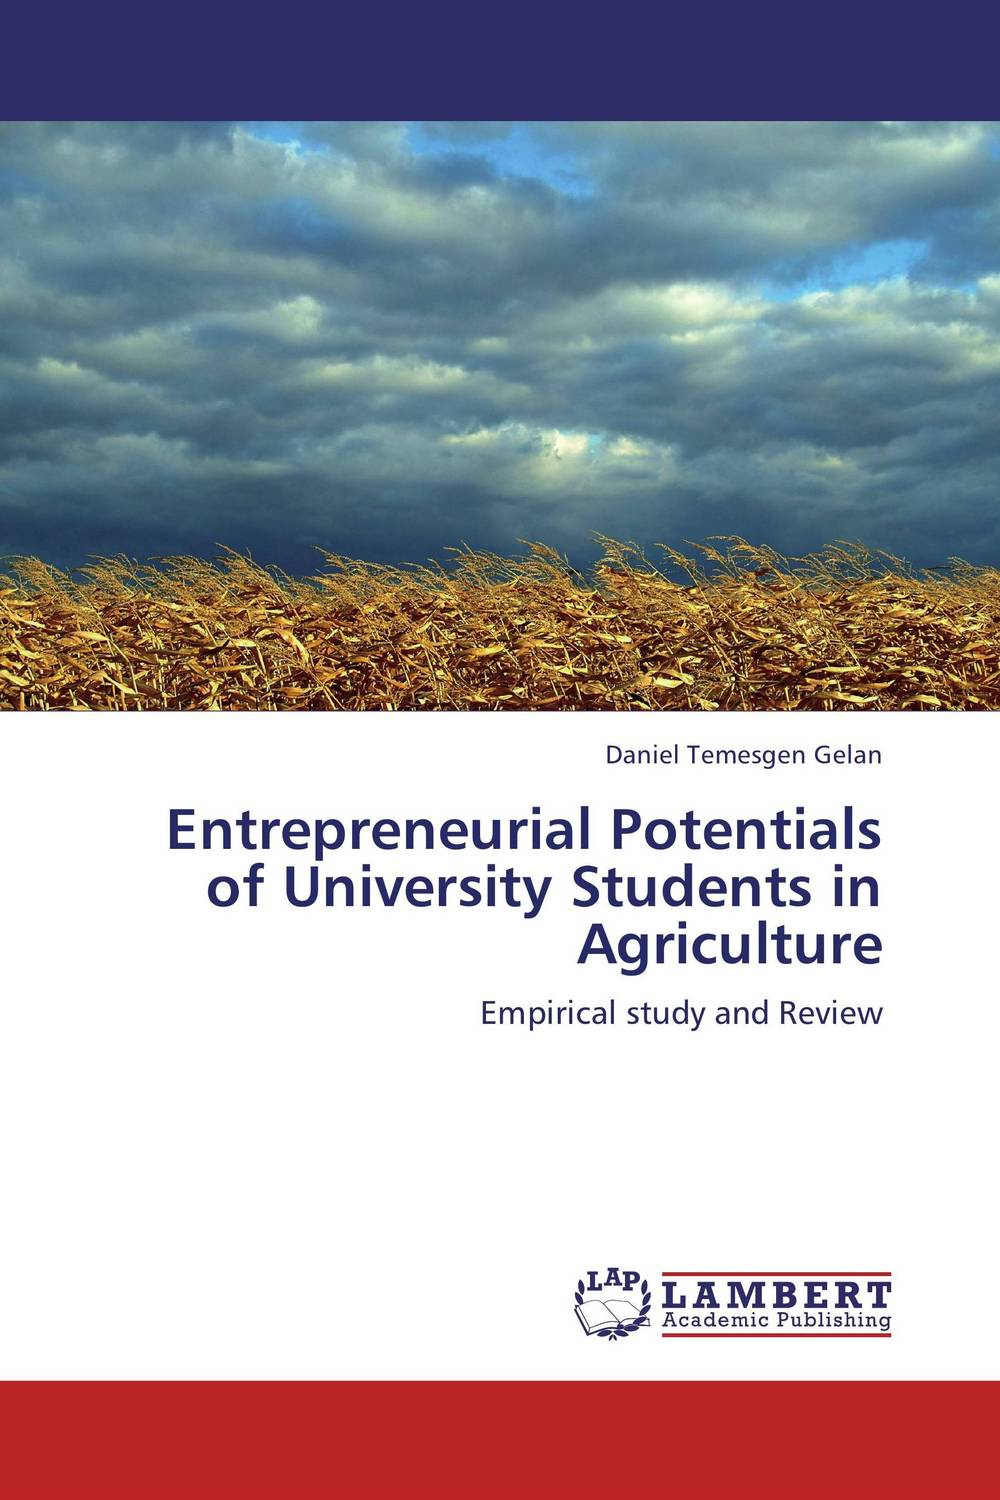 Entrepreneurial Potentials of University Students in Agriculture